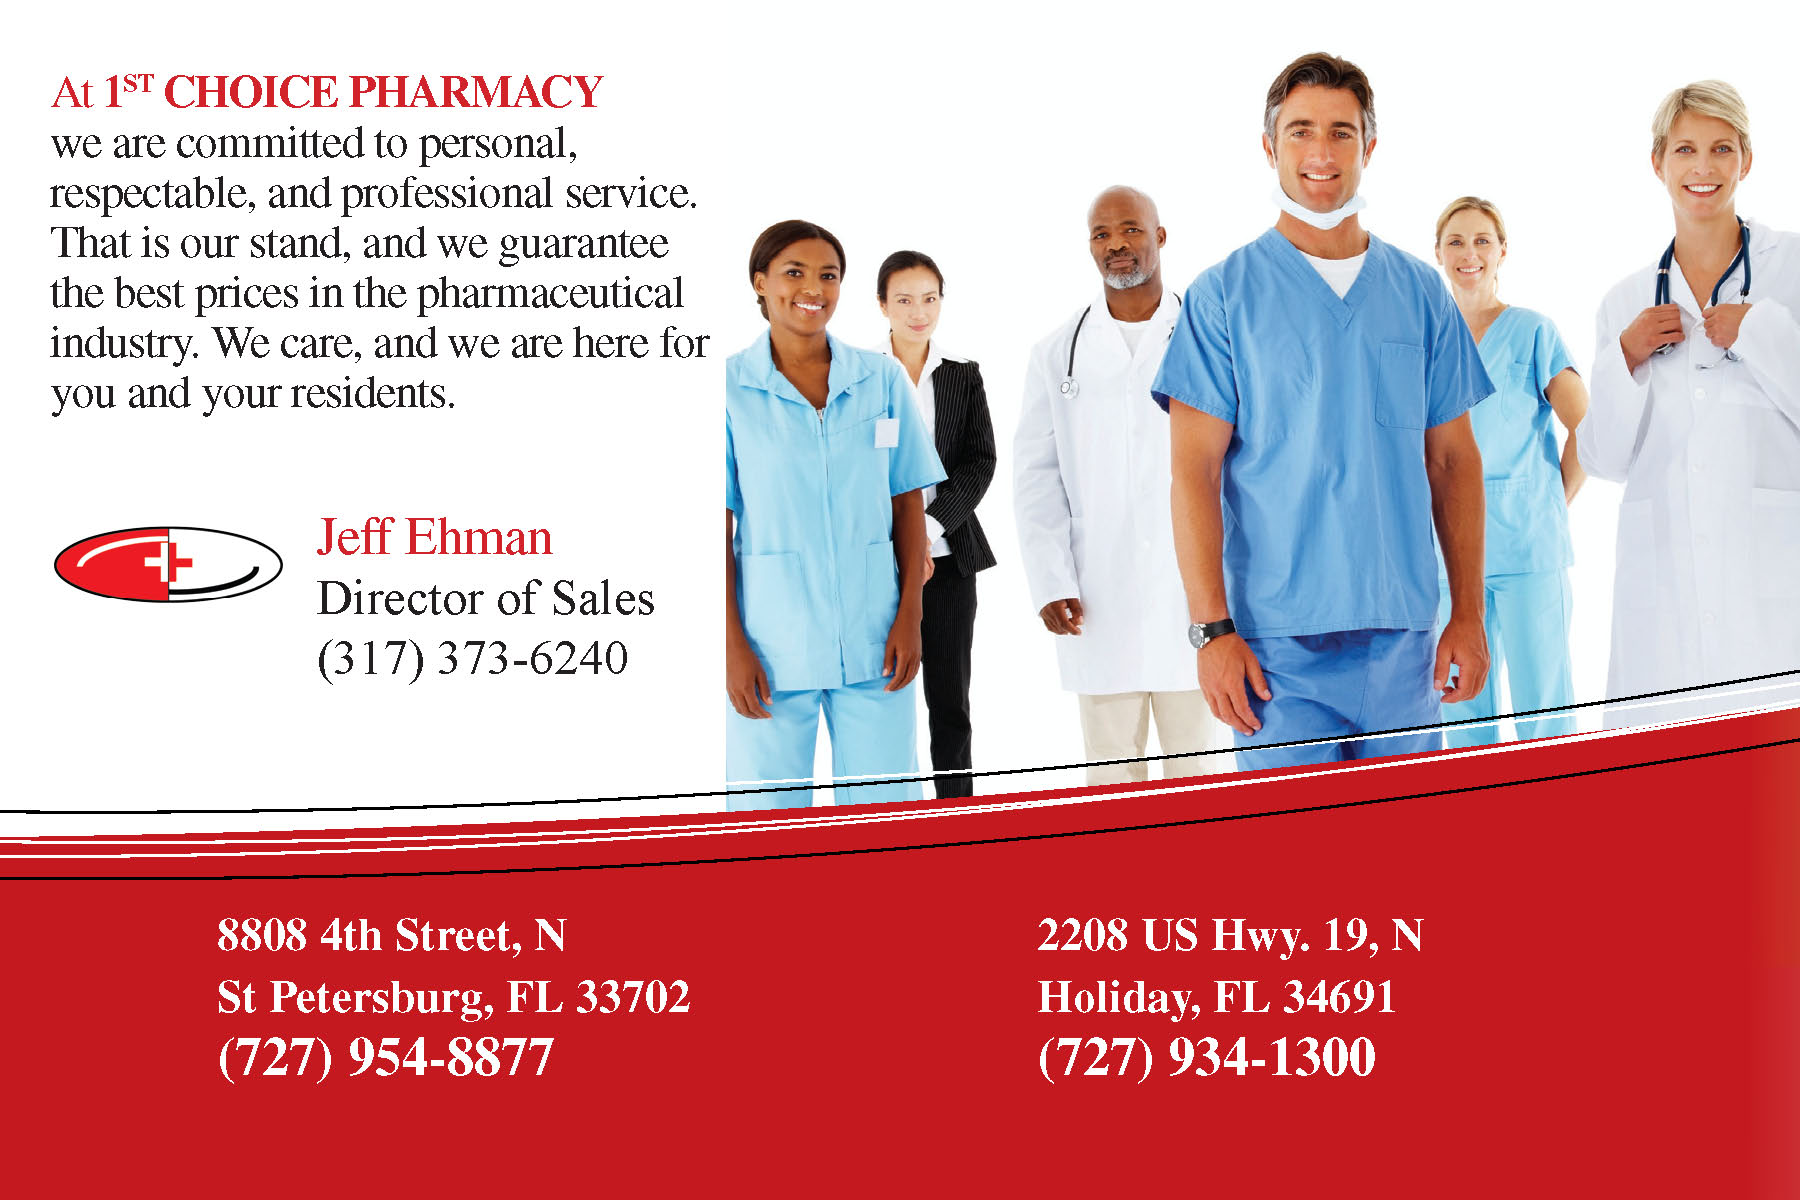 1st+choice+pharmacy+postcard_Page_2.jpg